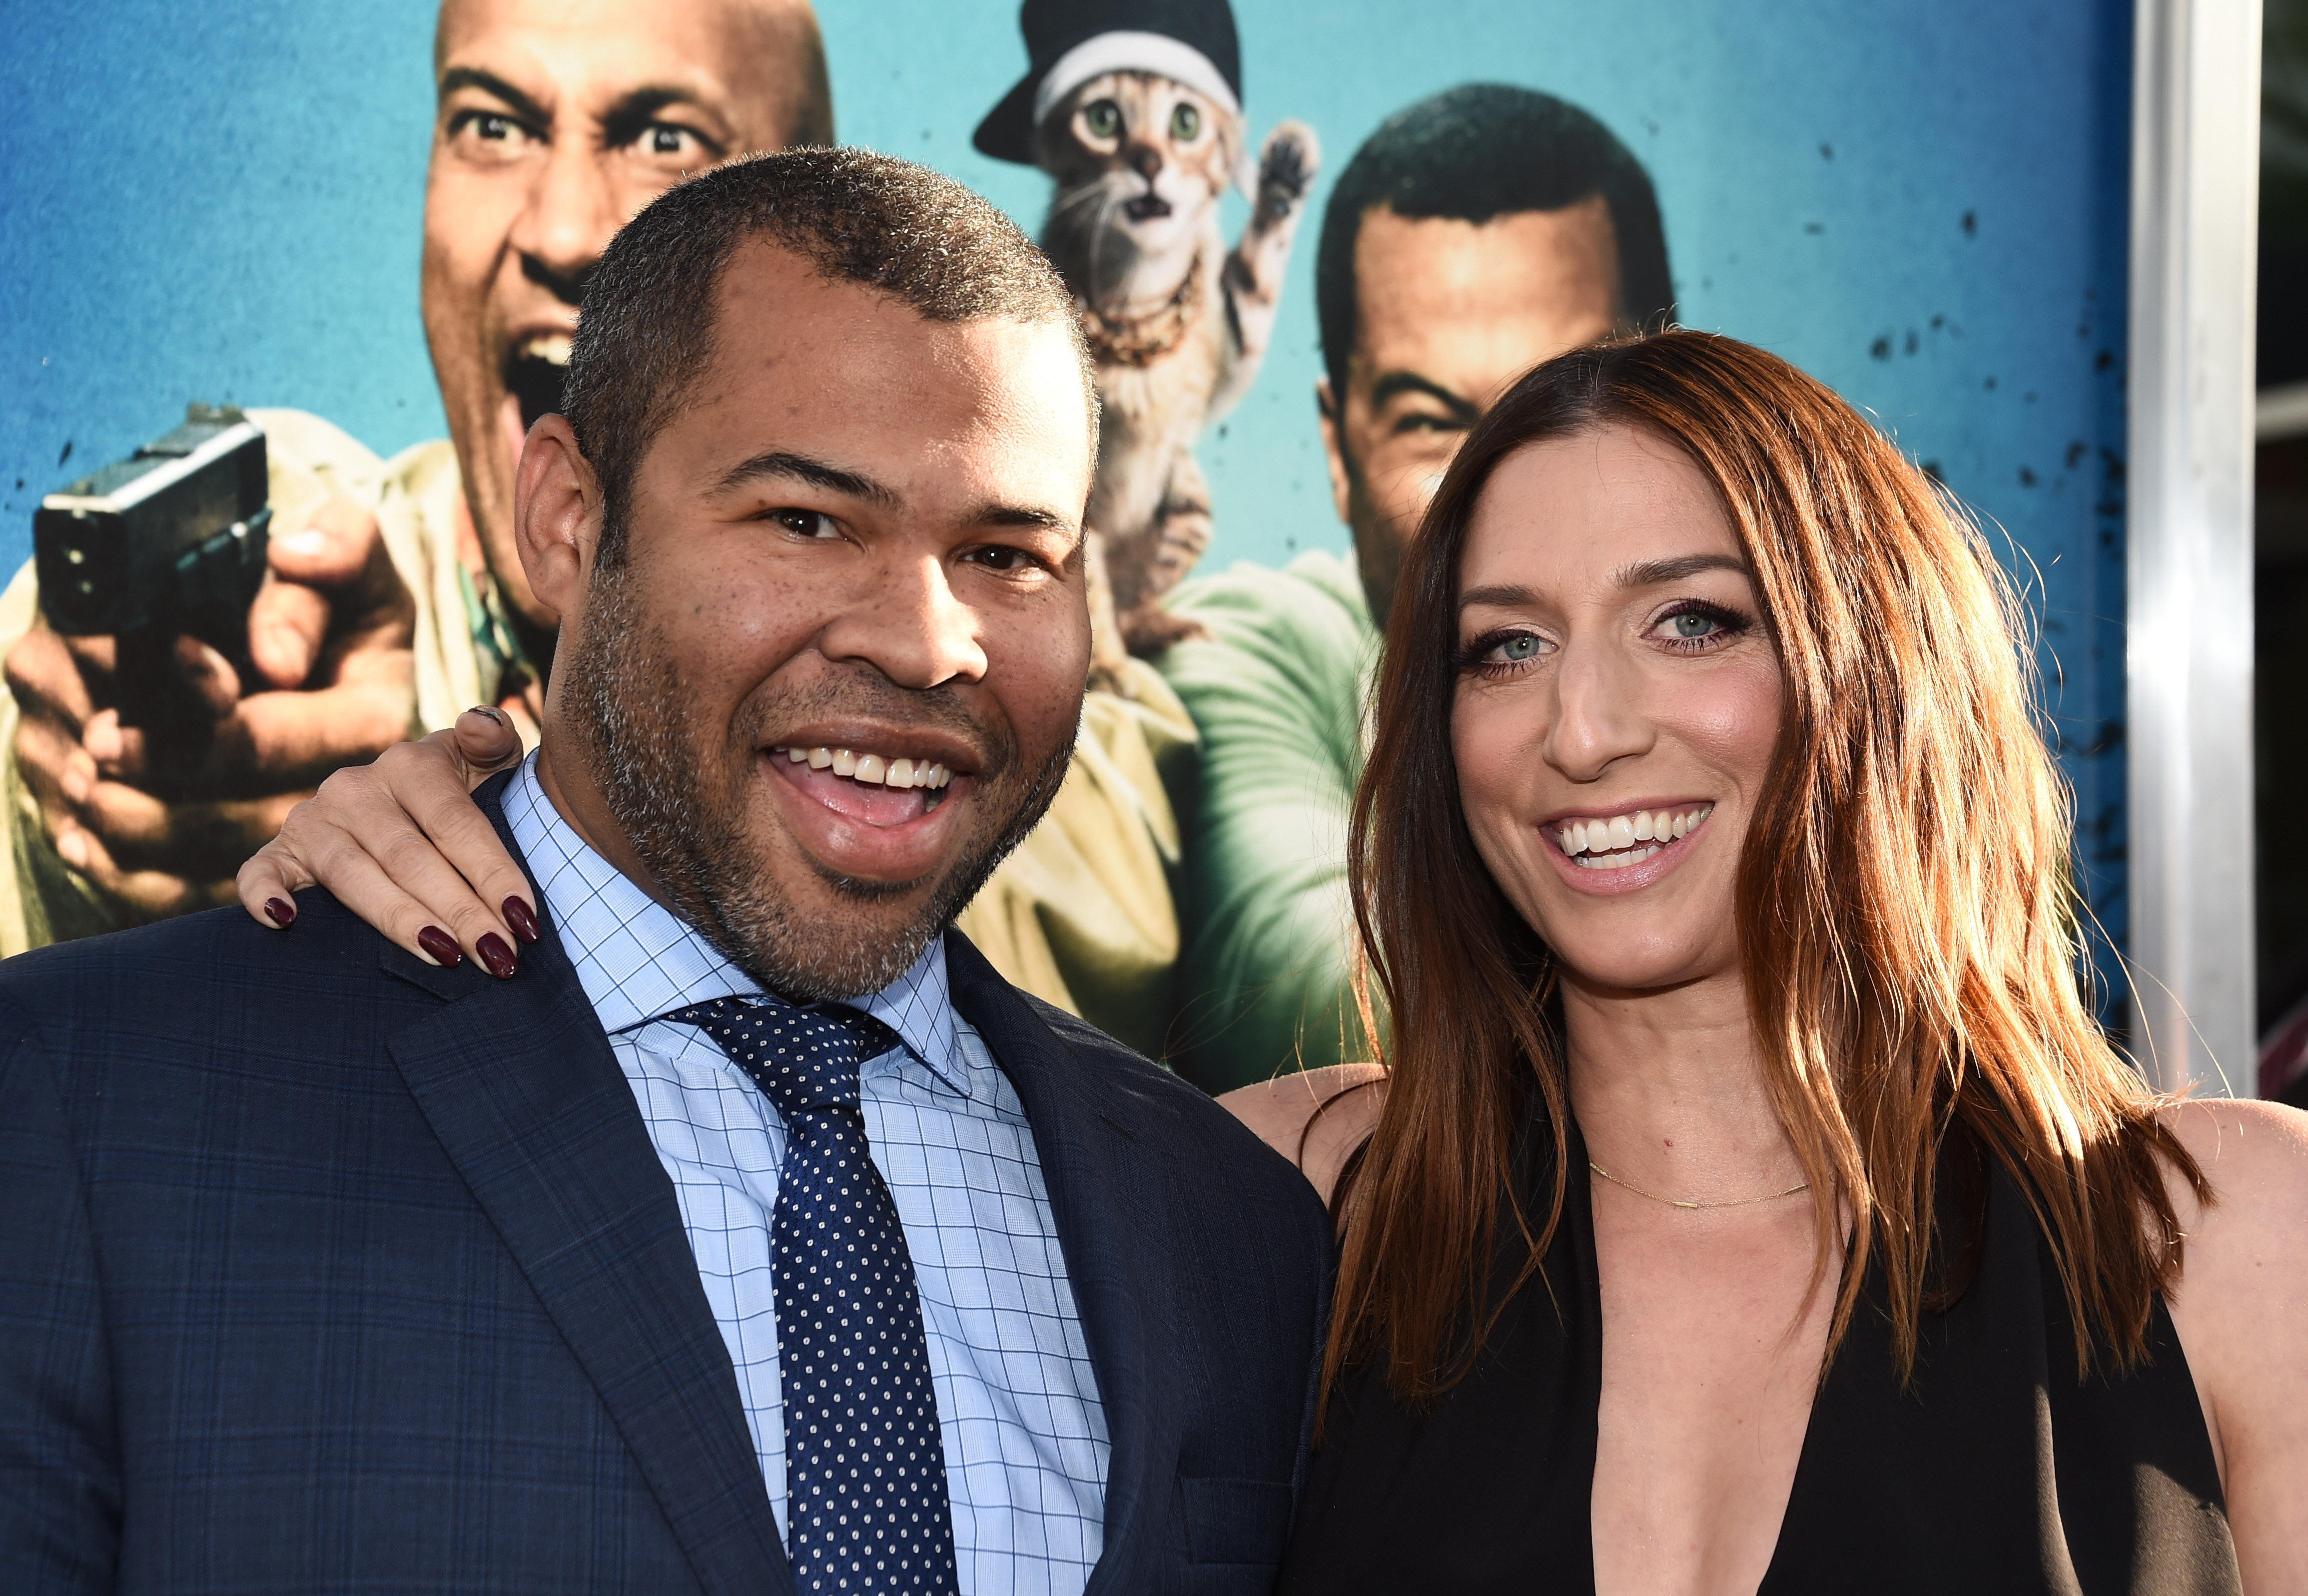 The best: jordan peele and chelsea peretti dating